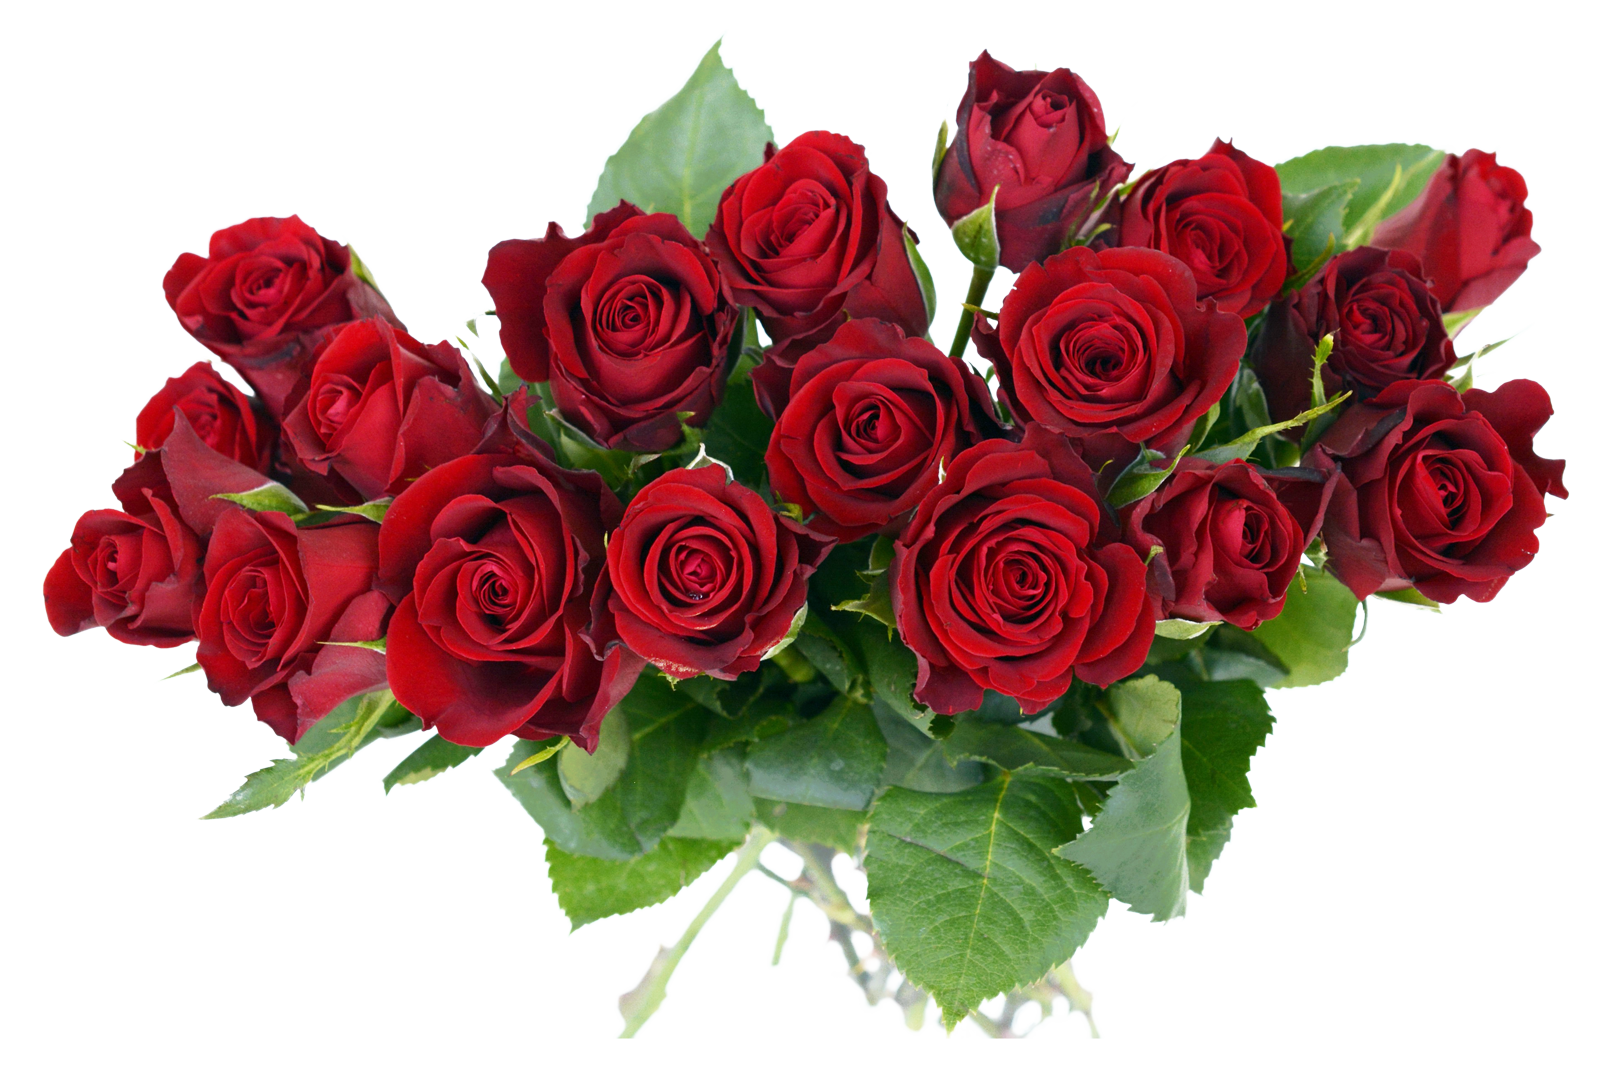 Roses png images. Rose transparent pictures free